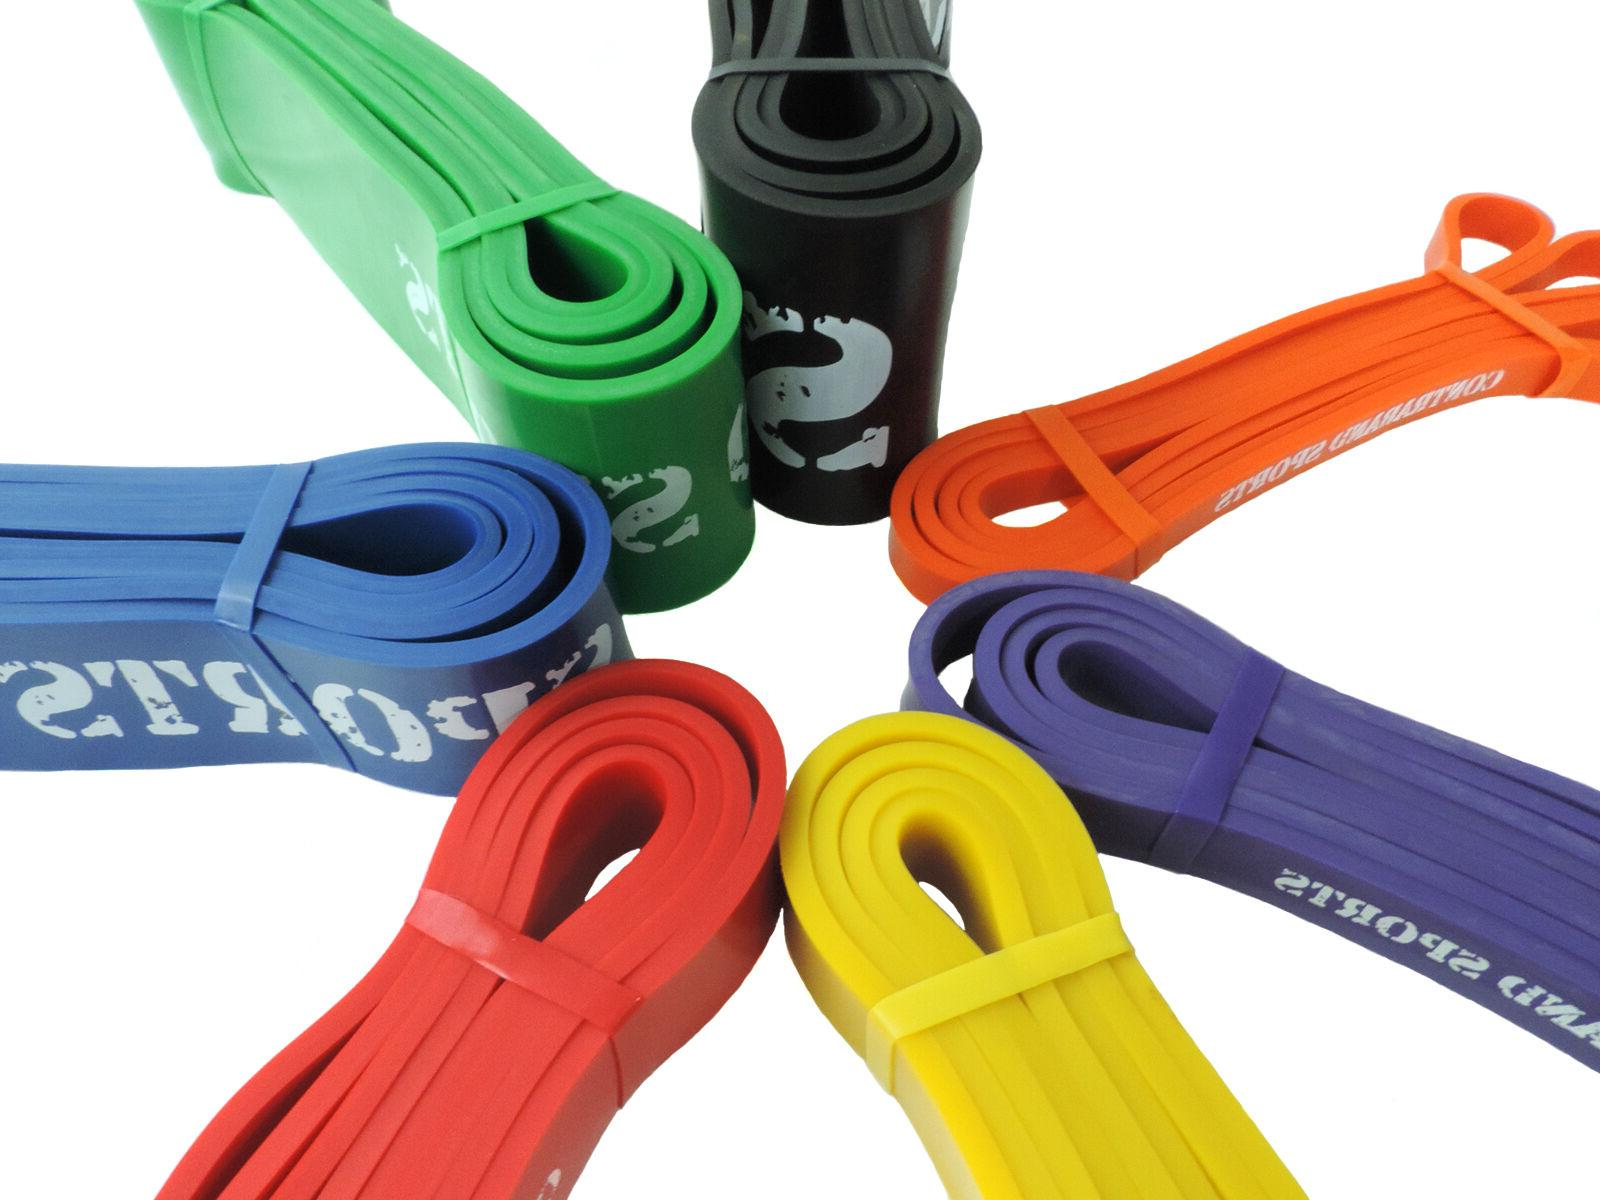 Contraband Resistance Bands, Bands, Pullup bands